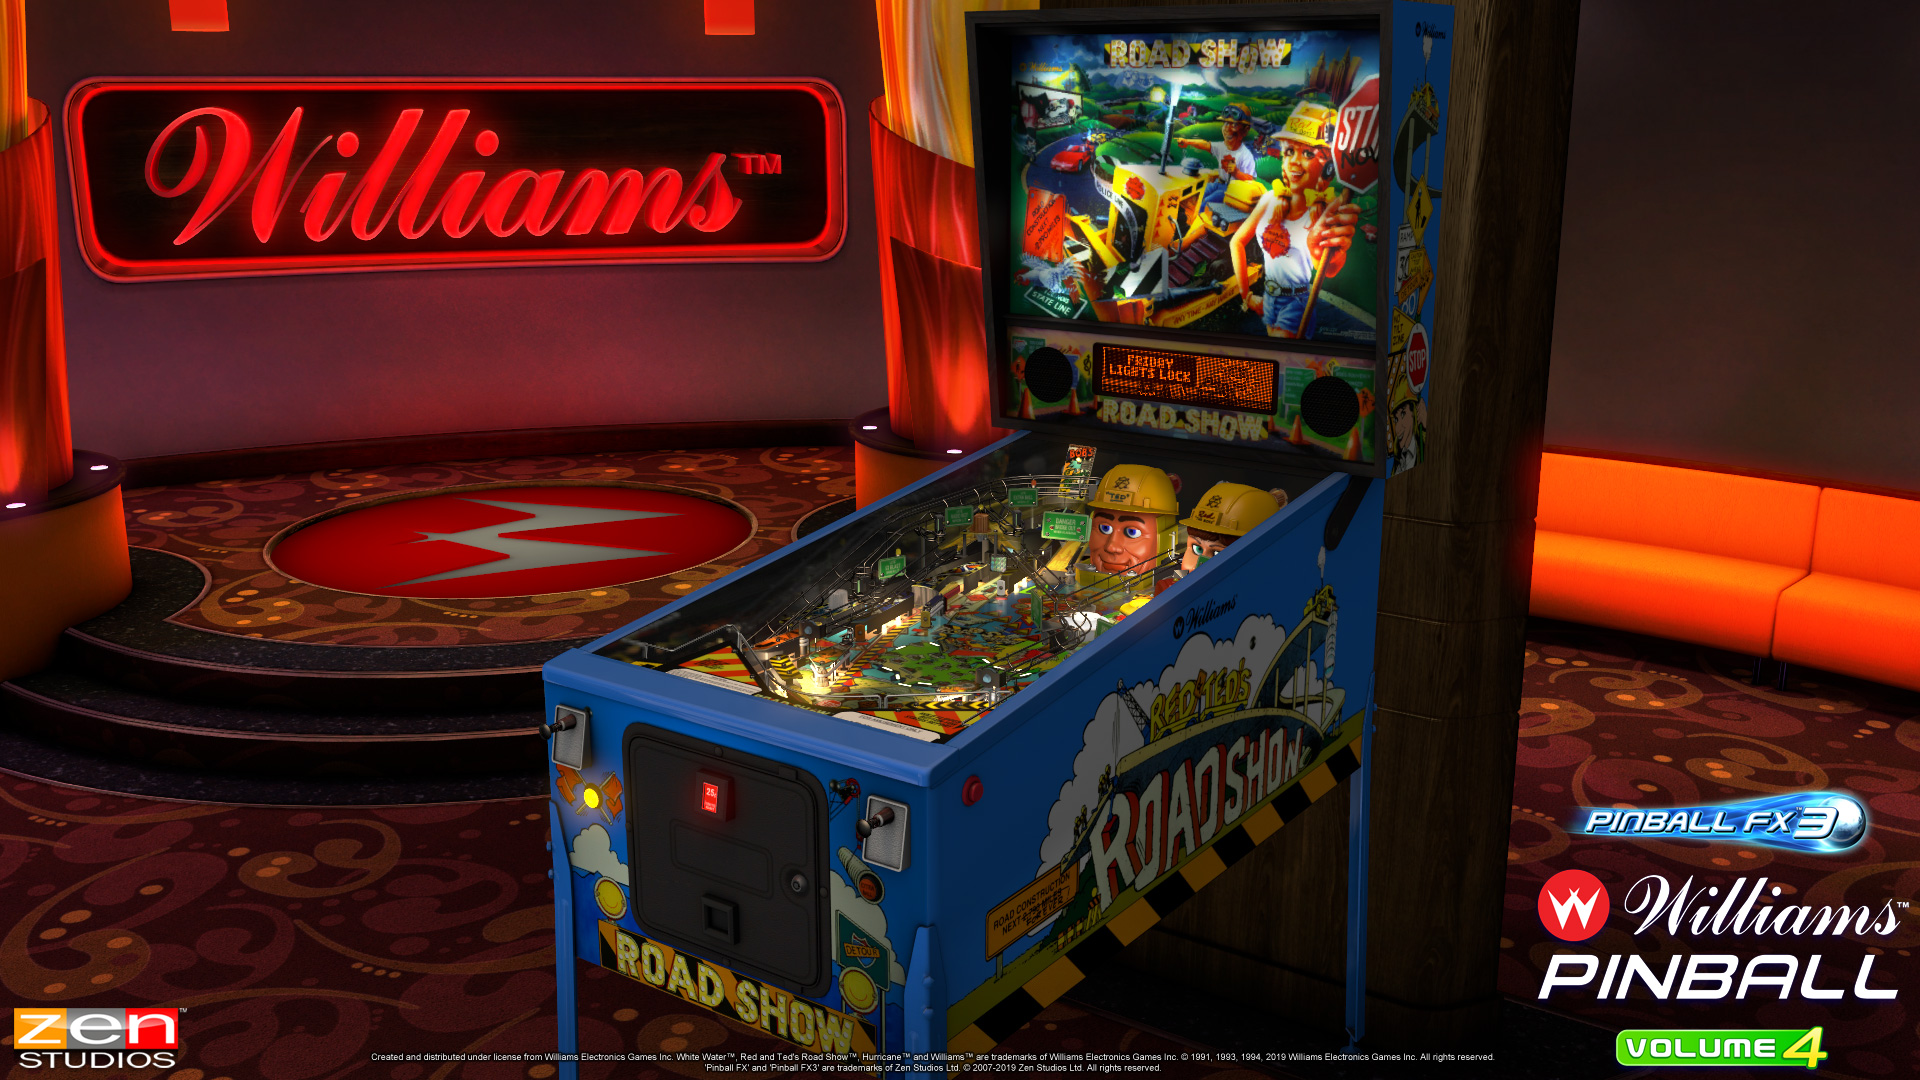 Buckle up for a wild ride with the Williams Pinball Vol  4 pack for